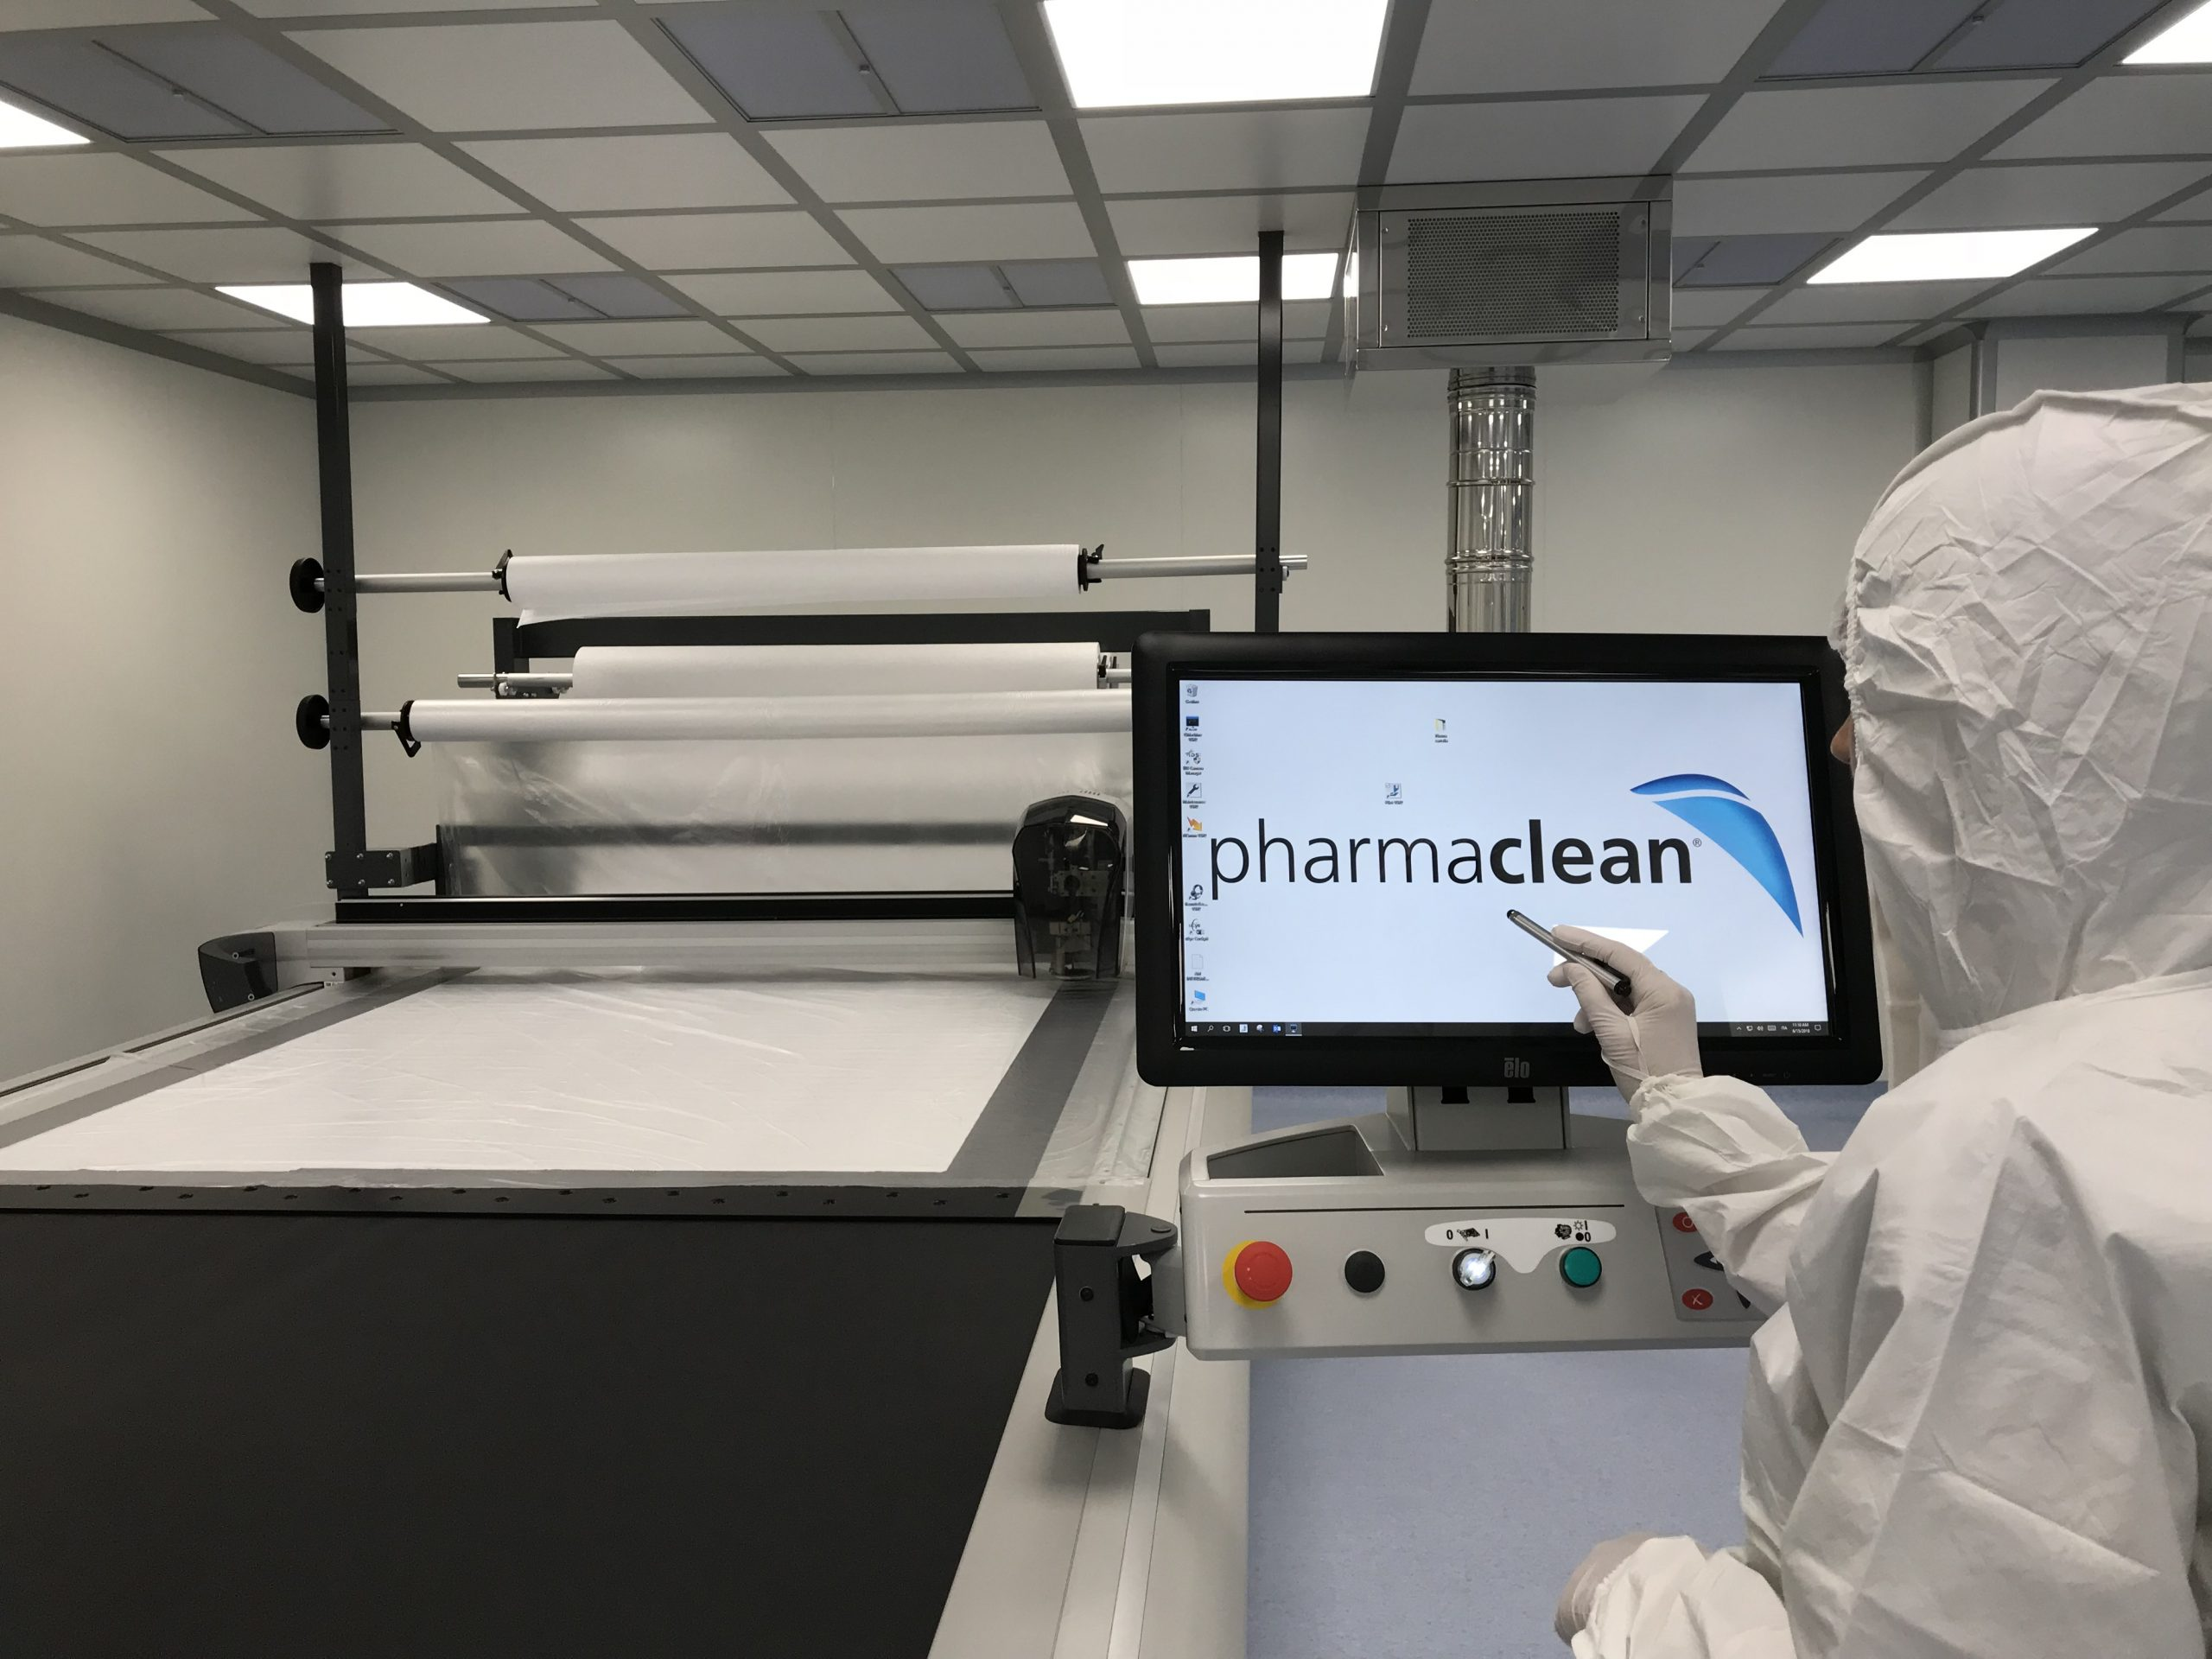 Pharmaclean by AM Instruments